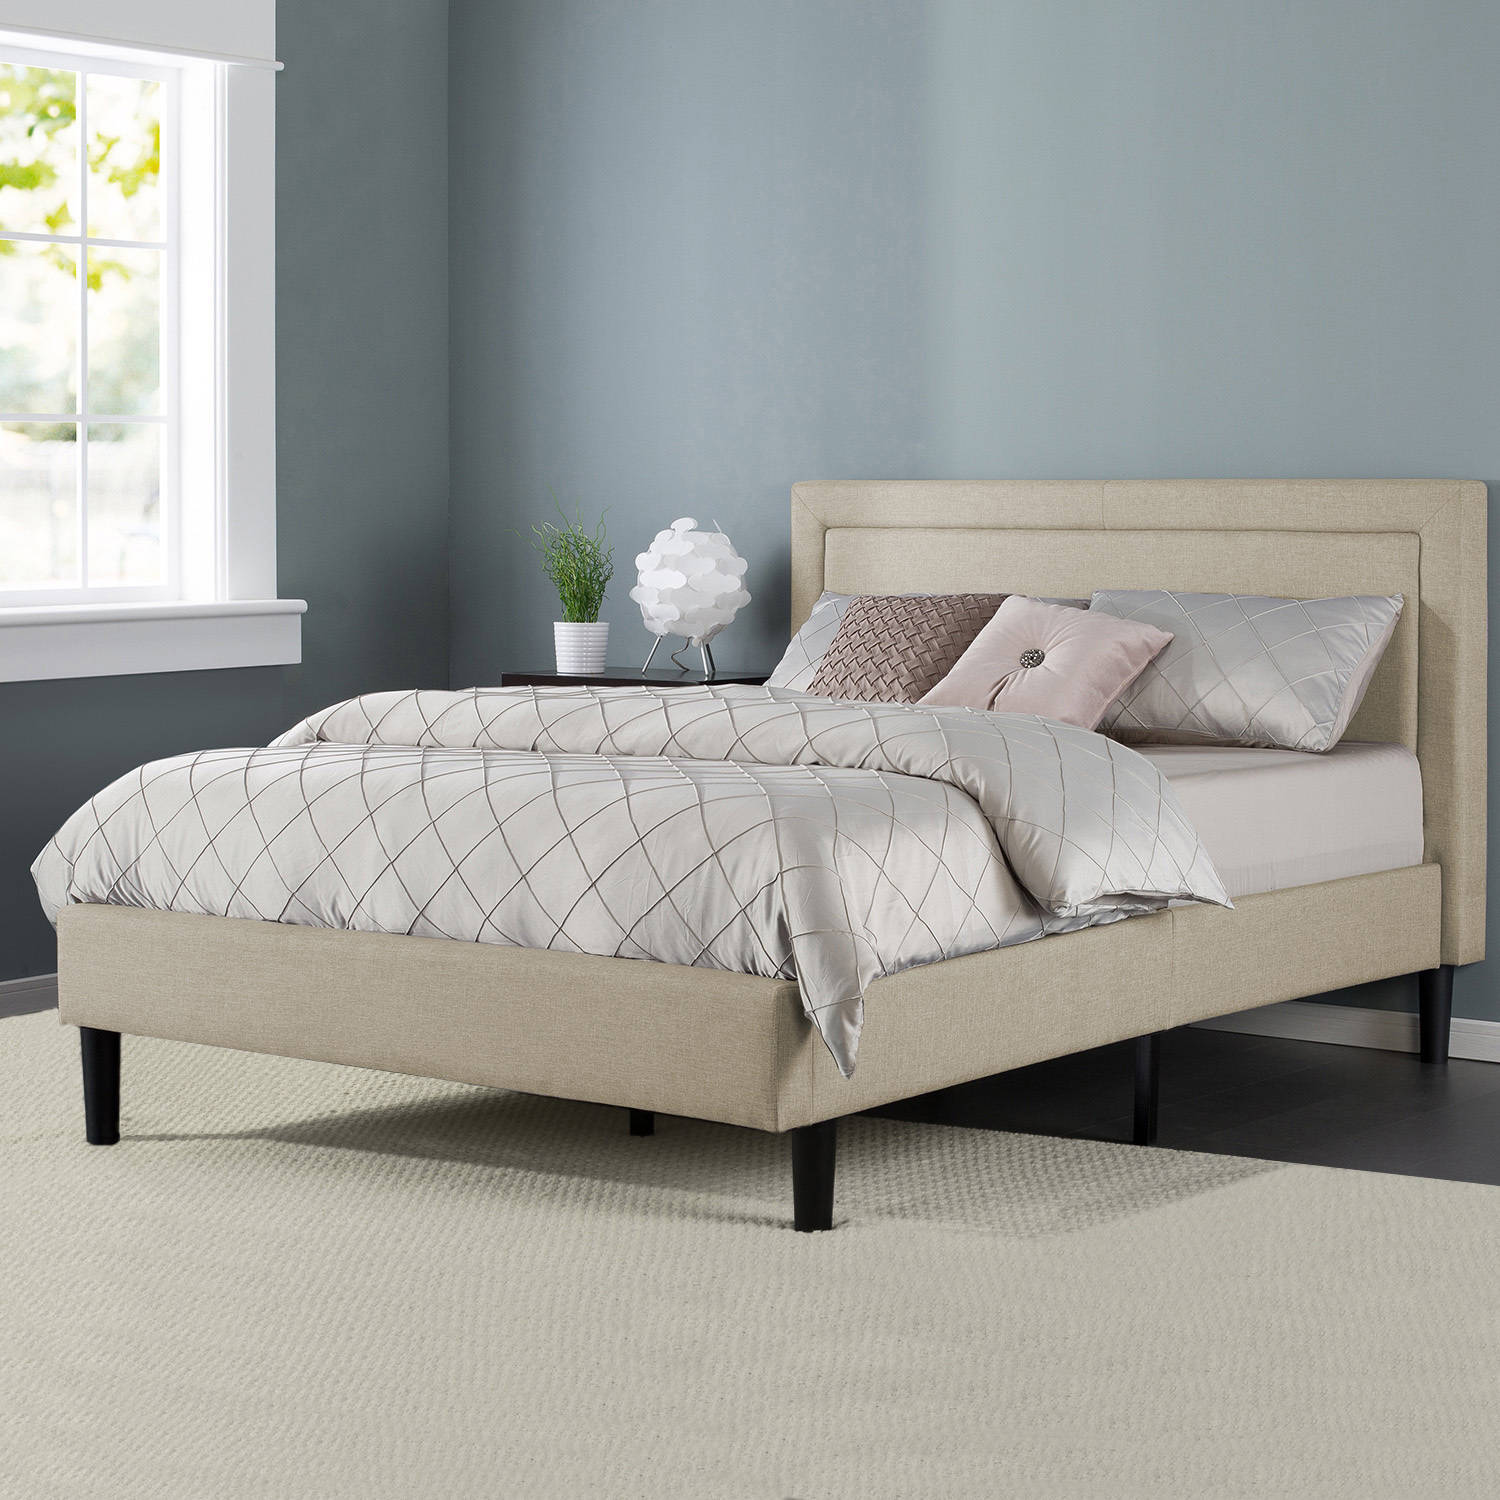 Zinus Upholstered Detailed Platform Bed with Headboard